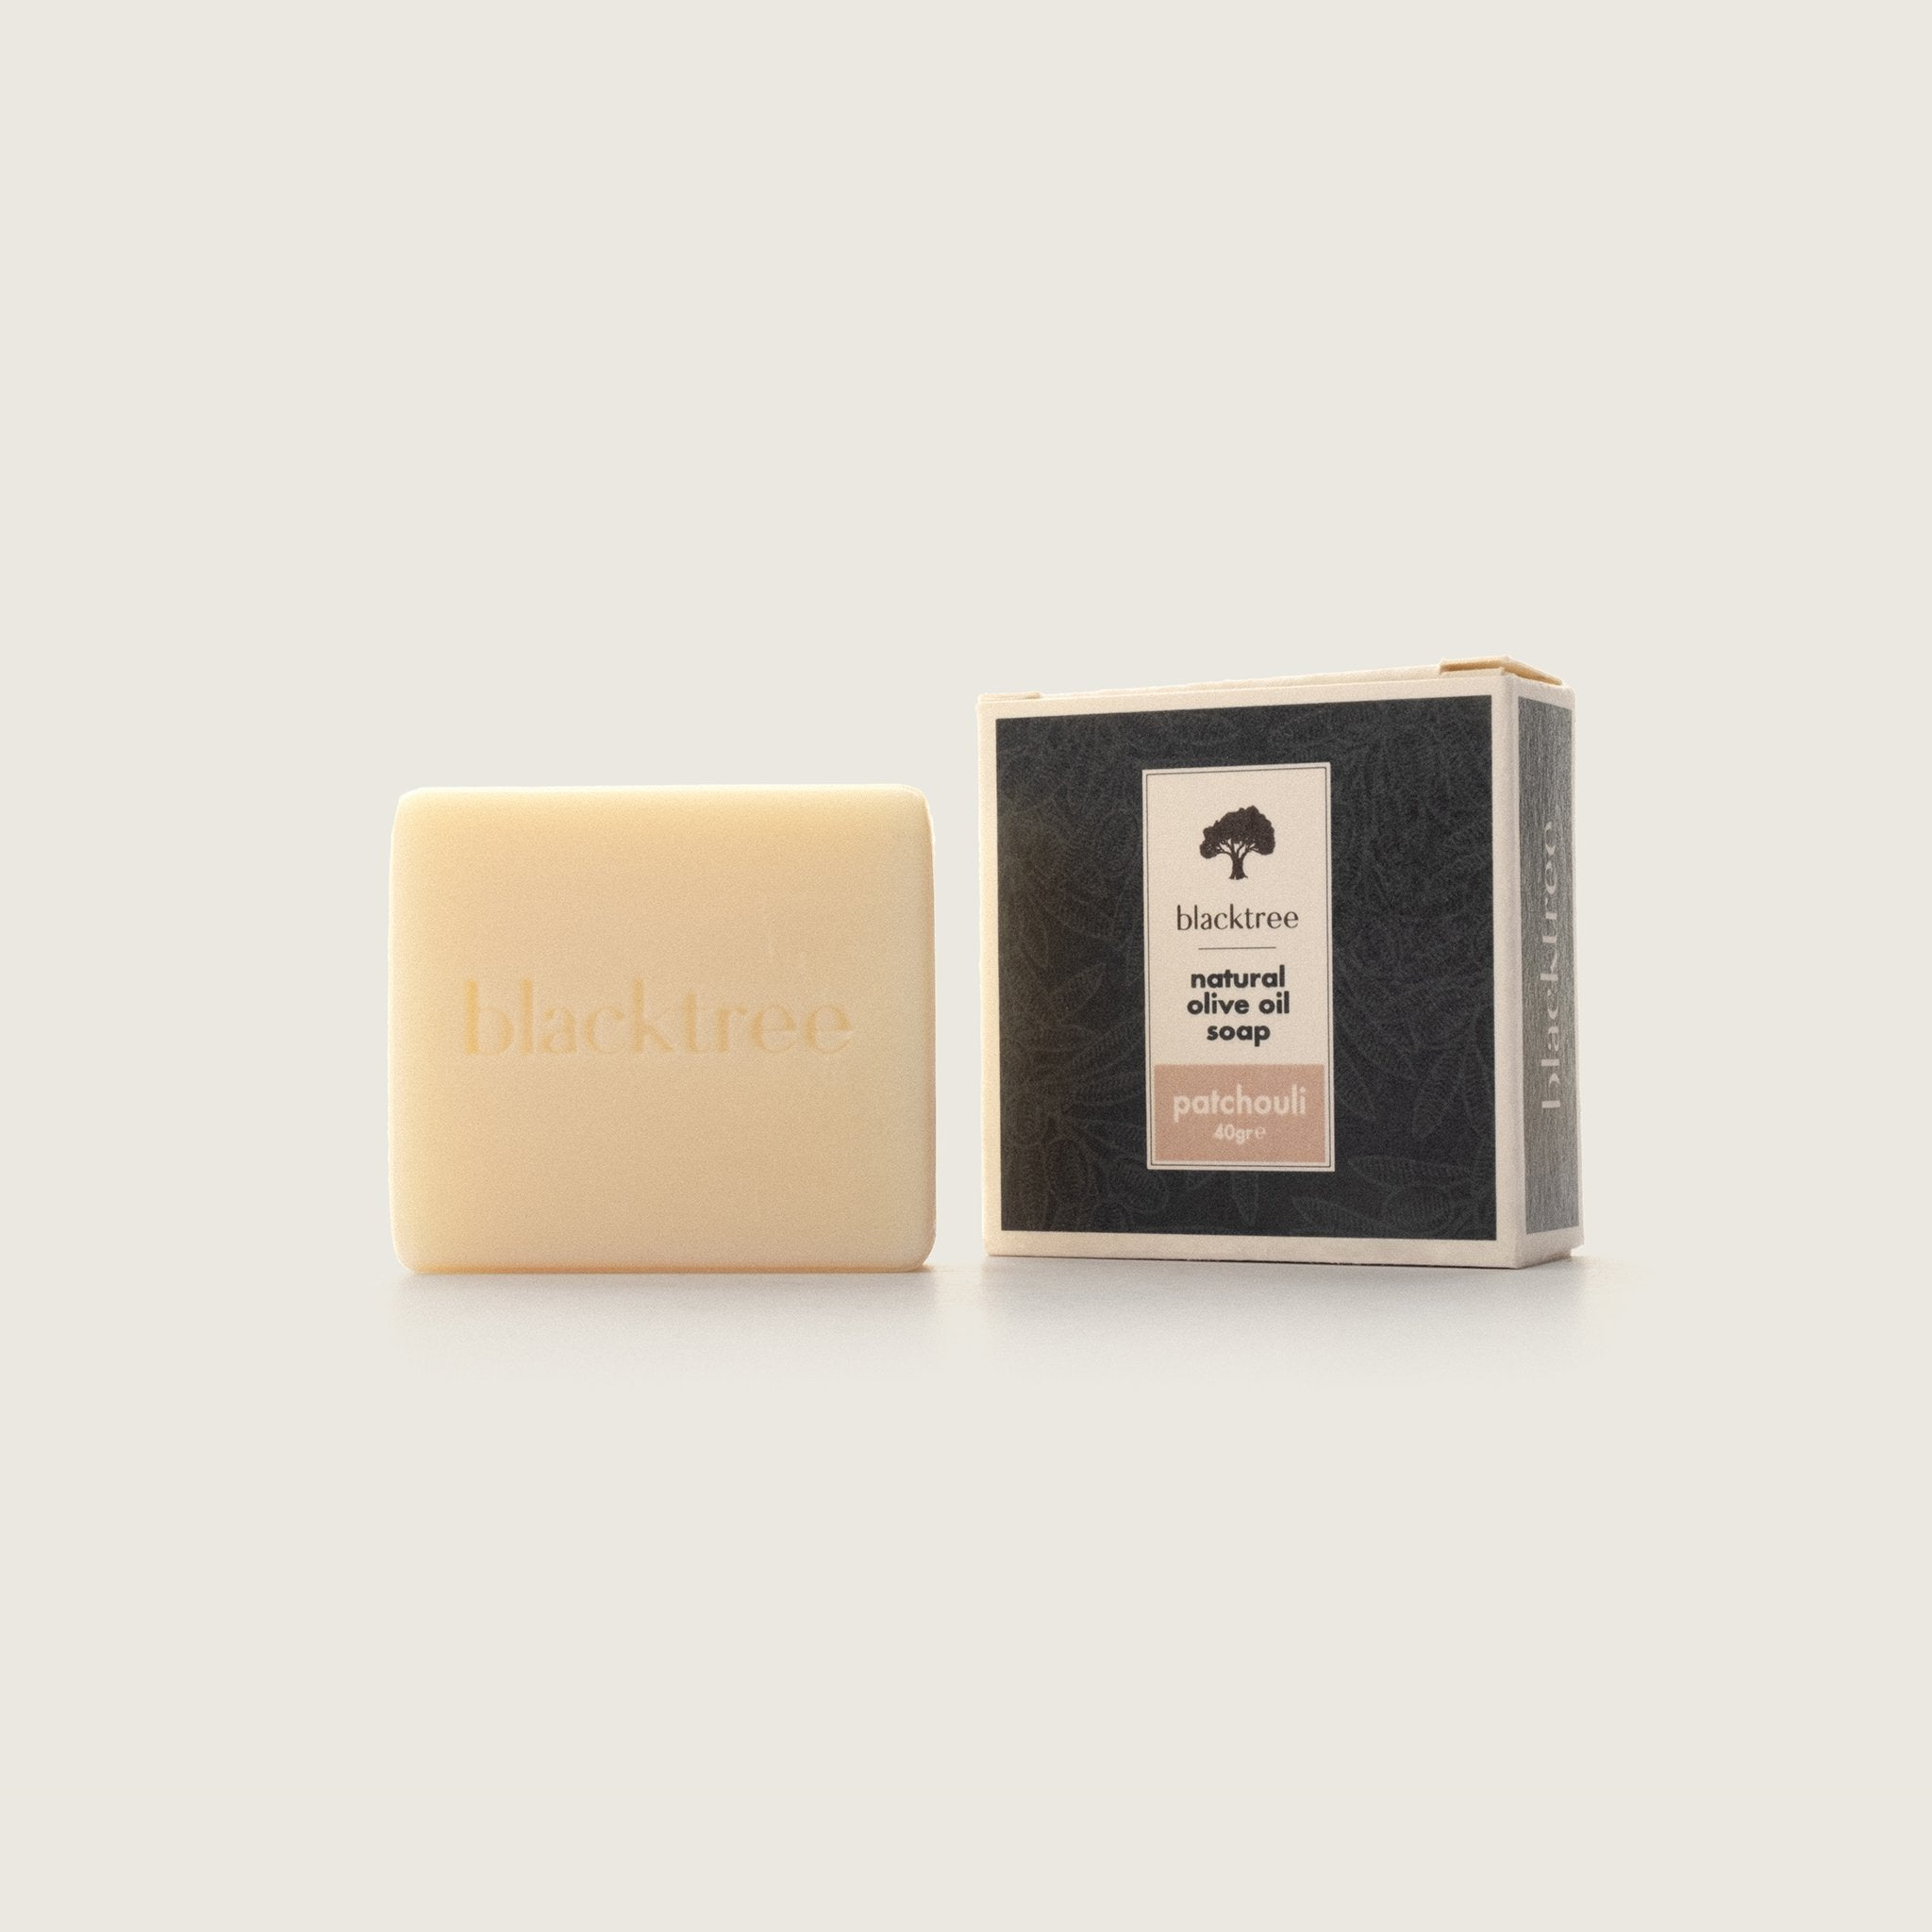 Natural Olive Oil Soap - Patchouli - 40gr (Bar Soap) - Blacktree Naturals